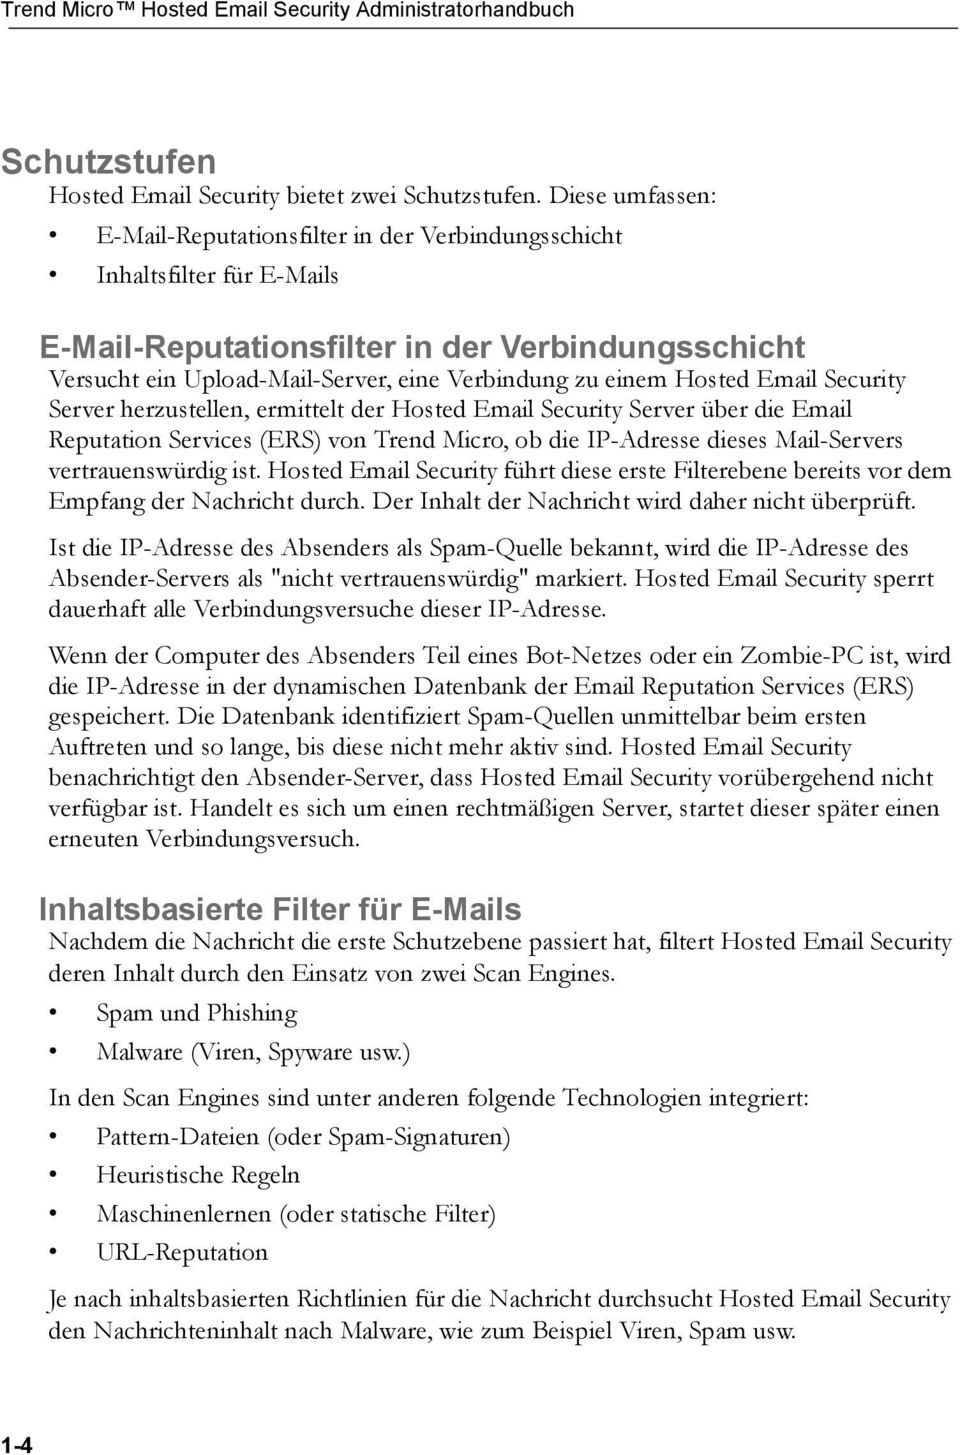 einem Hosted Email Security Server herzustellen, ermittelt der Hosted Email Security Server über die Email Reputation Services (ERS) von Trend Micro, ob die IP-Adresse dieses Mail-Servers